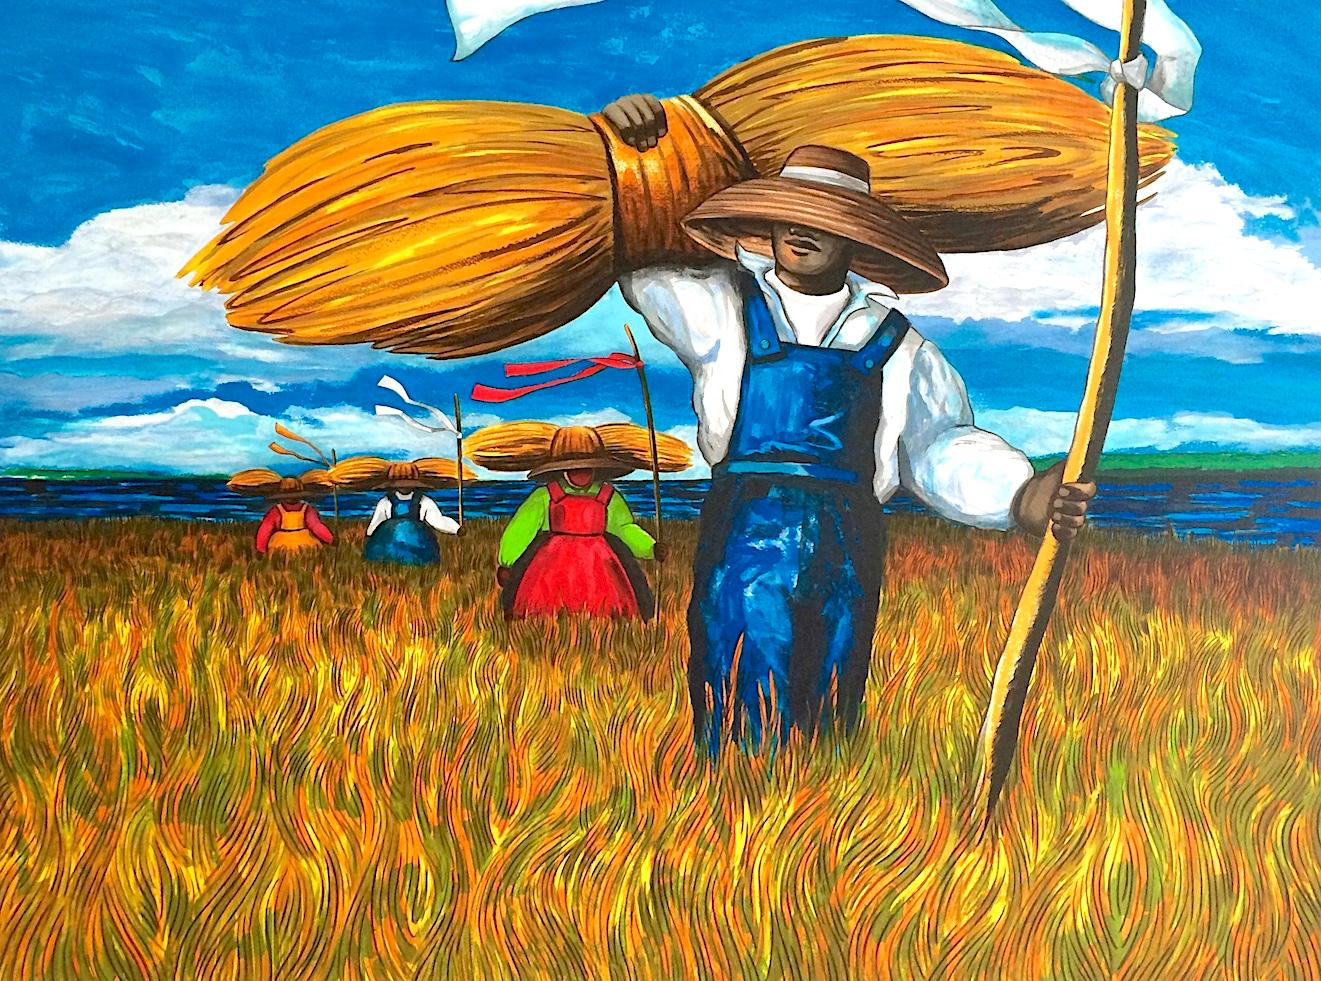 SWEETGRASS CARRIERS Signed Lithograph, South Carolina Lowcountry, Gullah Culture